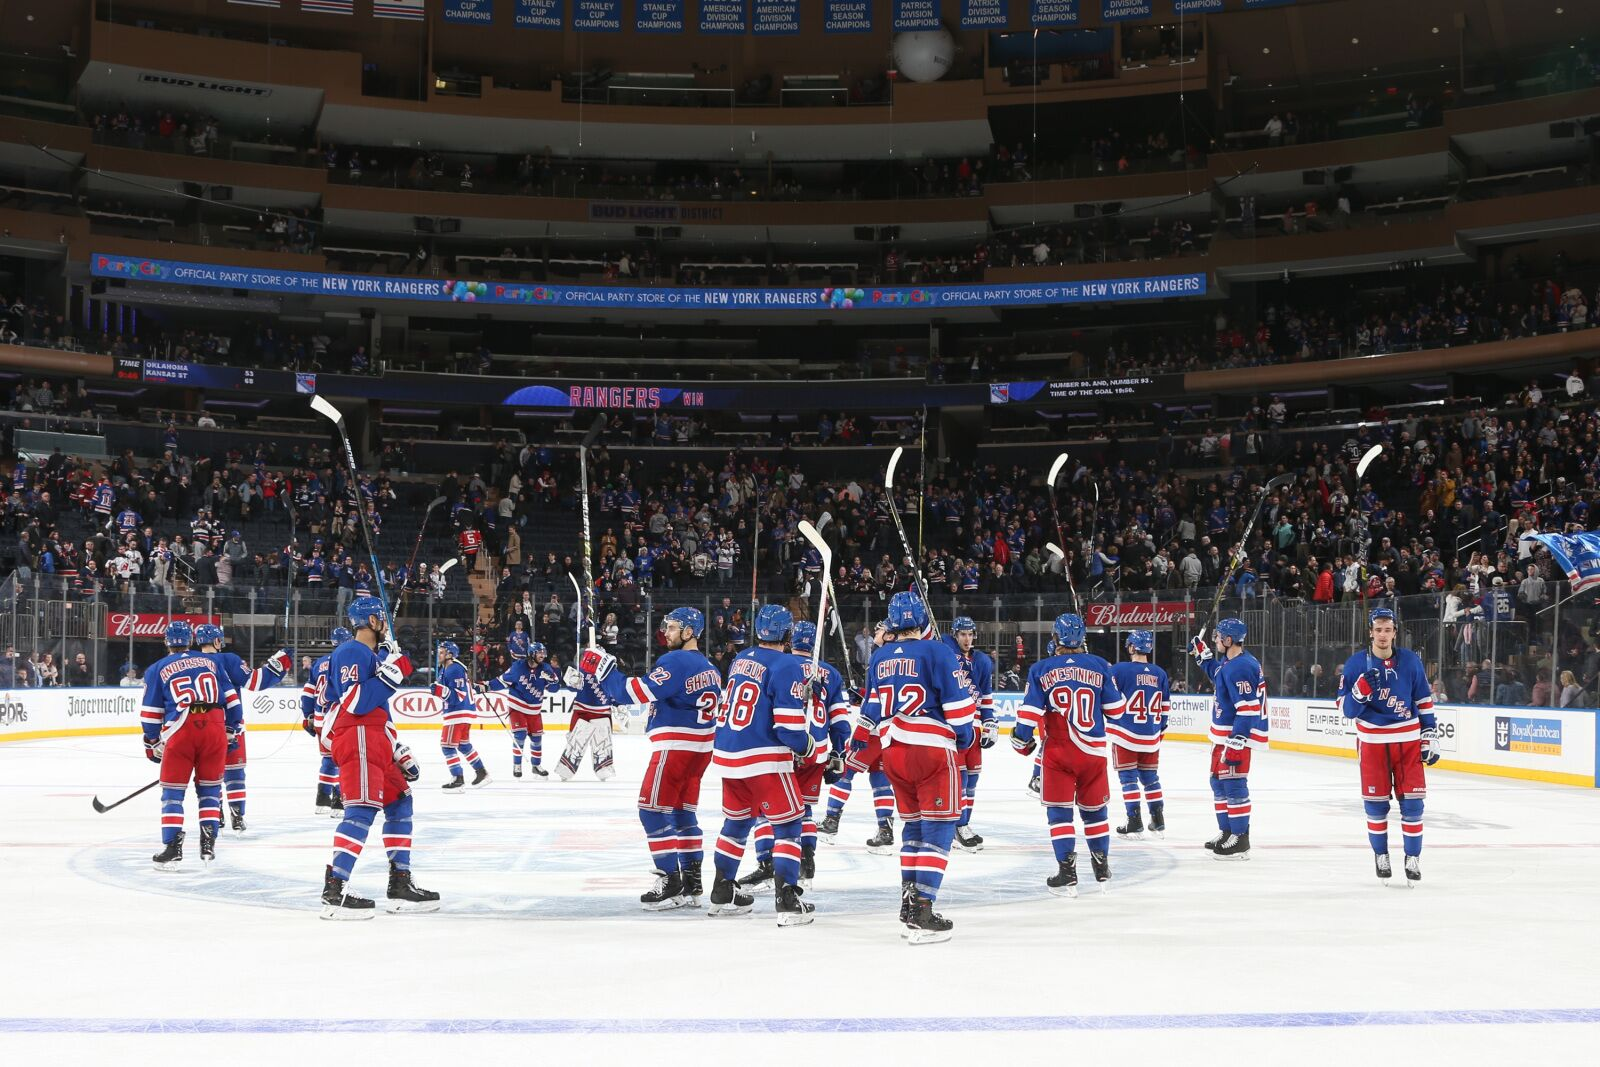 New York Rangers: Ranking the movability of the defensemen